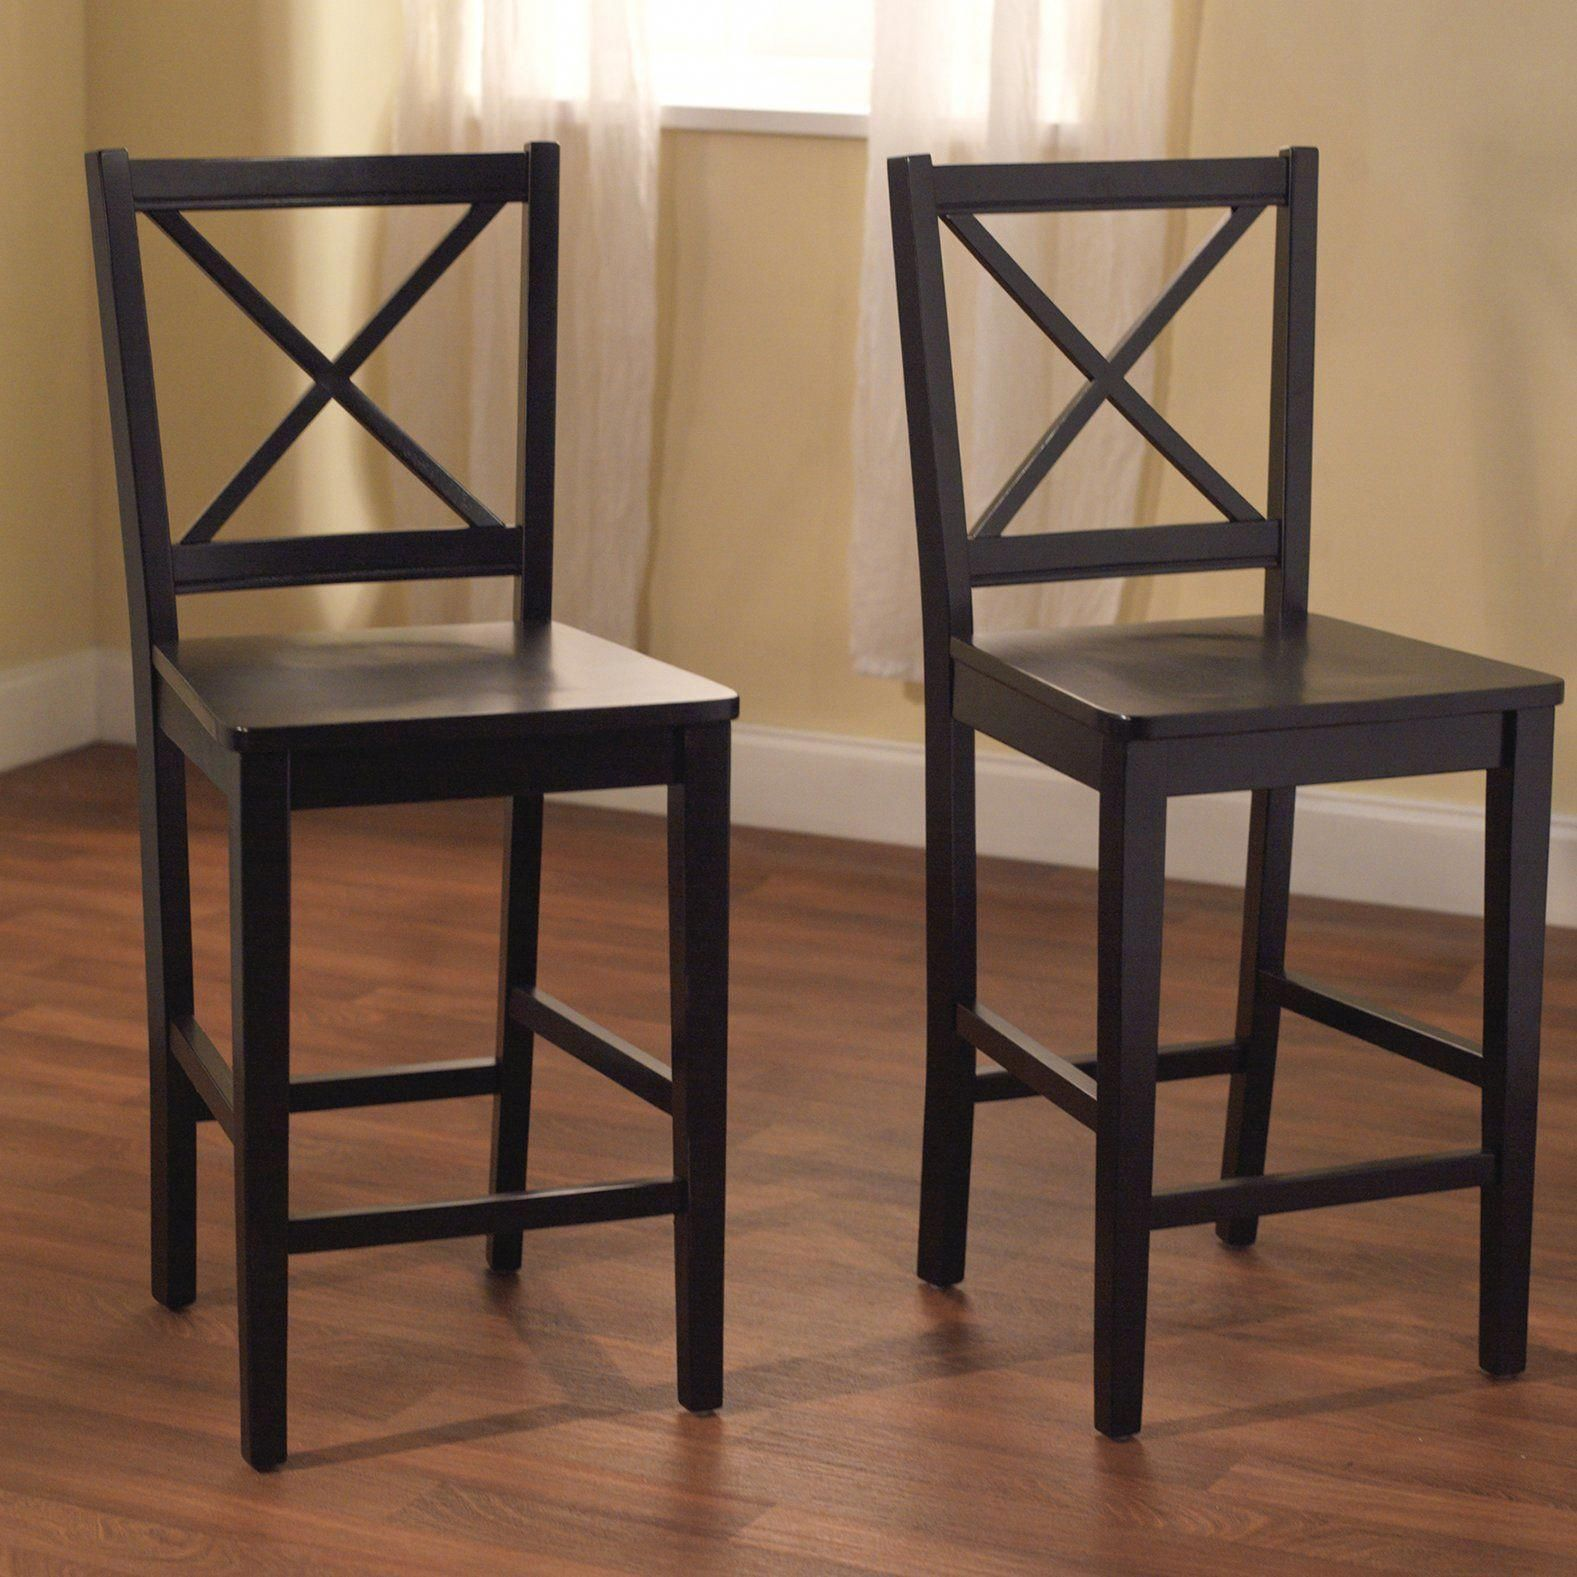 Sally 24 Bar Stool In 2018 Bar Furniture Bar Stools Stool 24